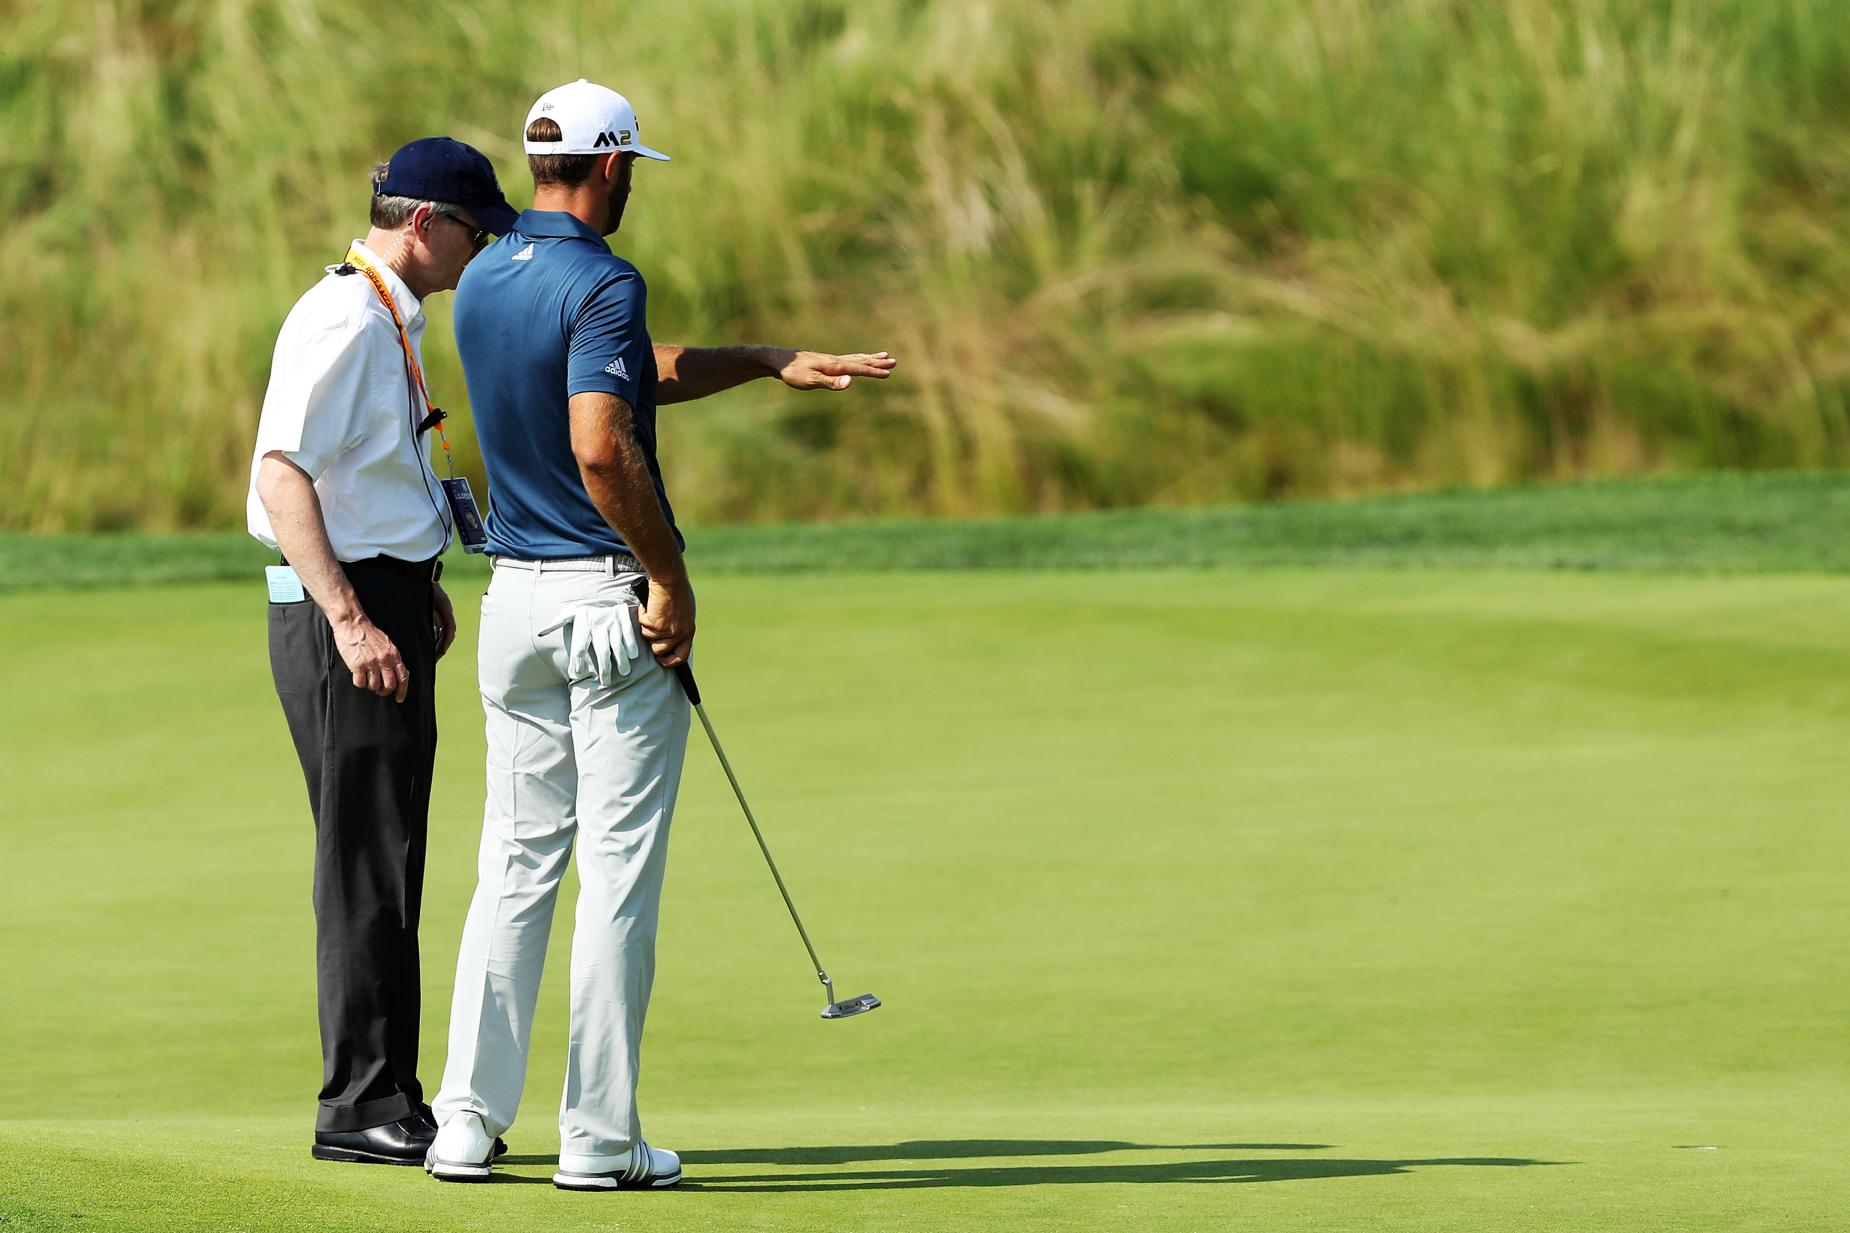 062116-Dustin-Johnson-US-Open-Putt.jpg